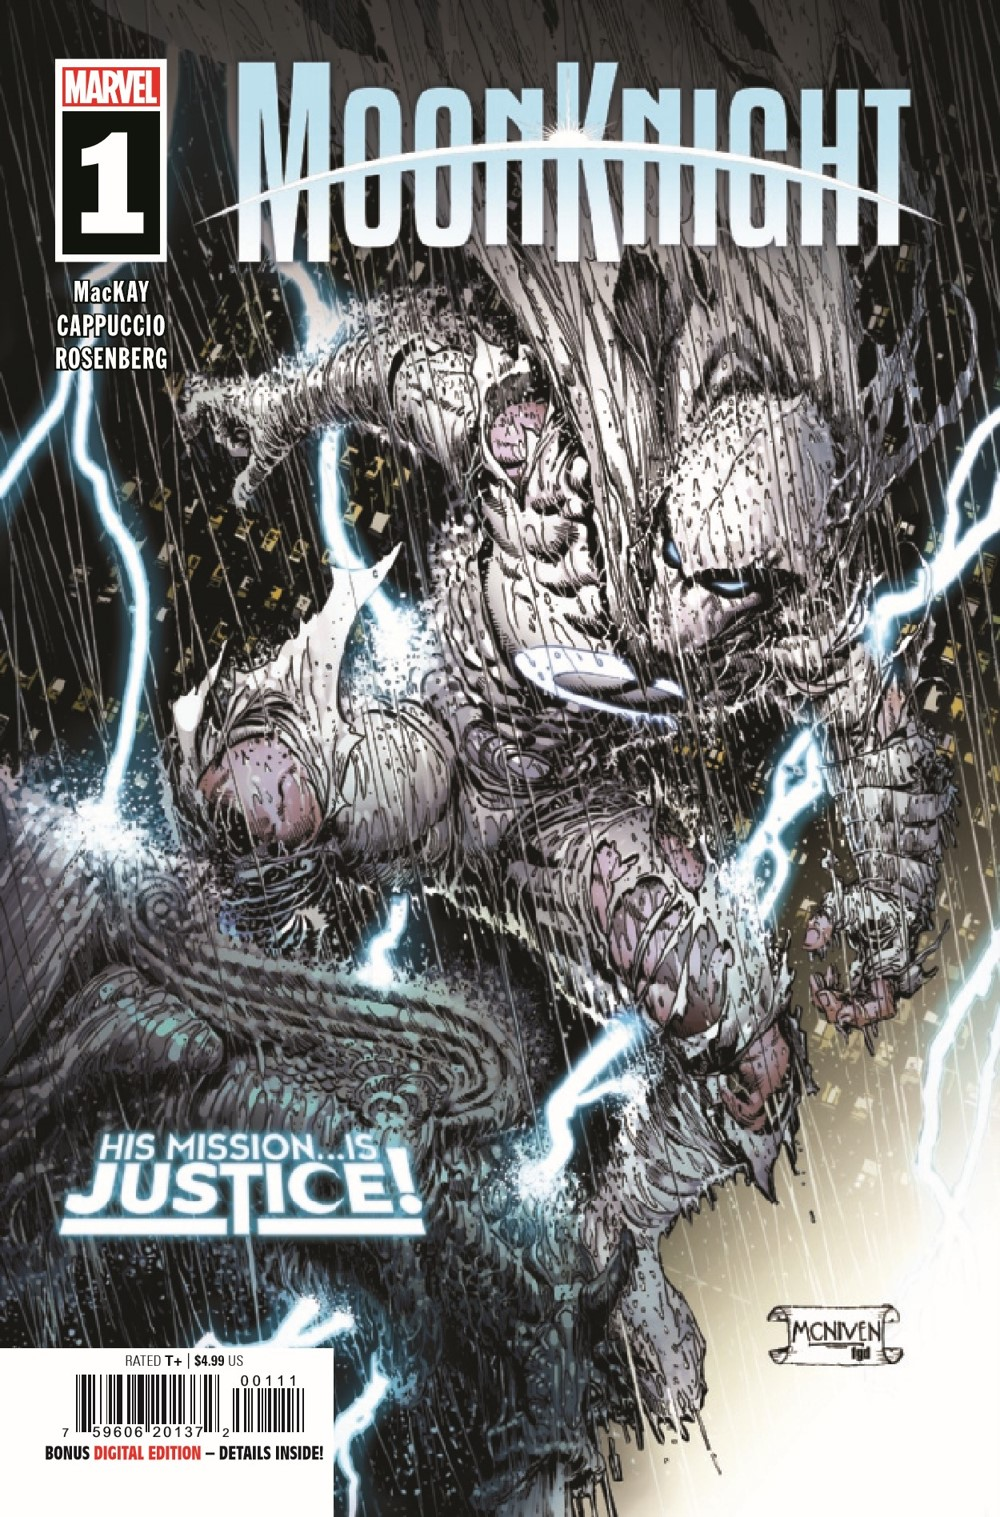 MOONKN2021001_Preview-1 ComicList Previews: MOON KNIGHT #1